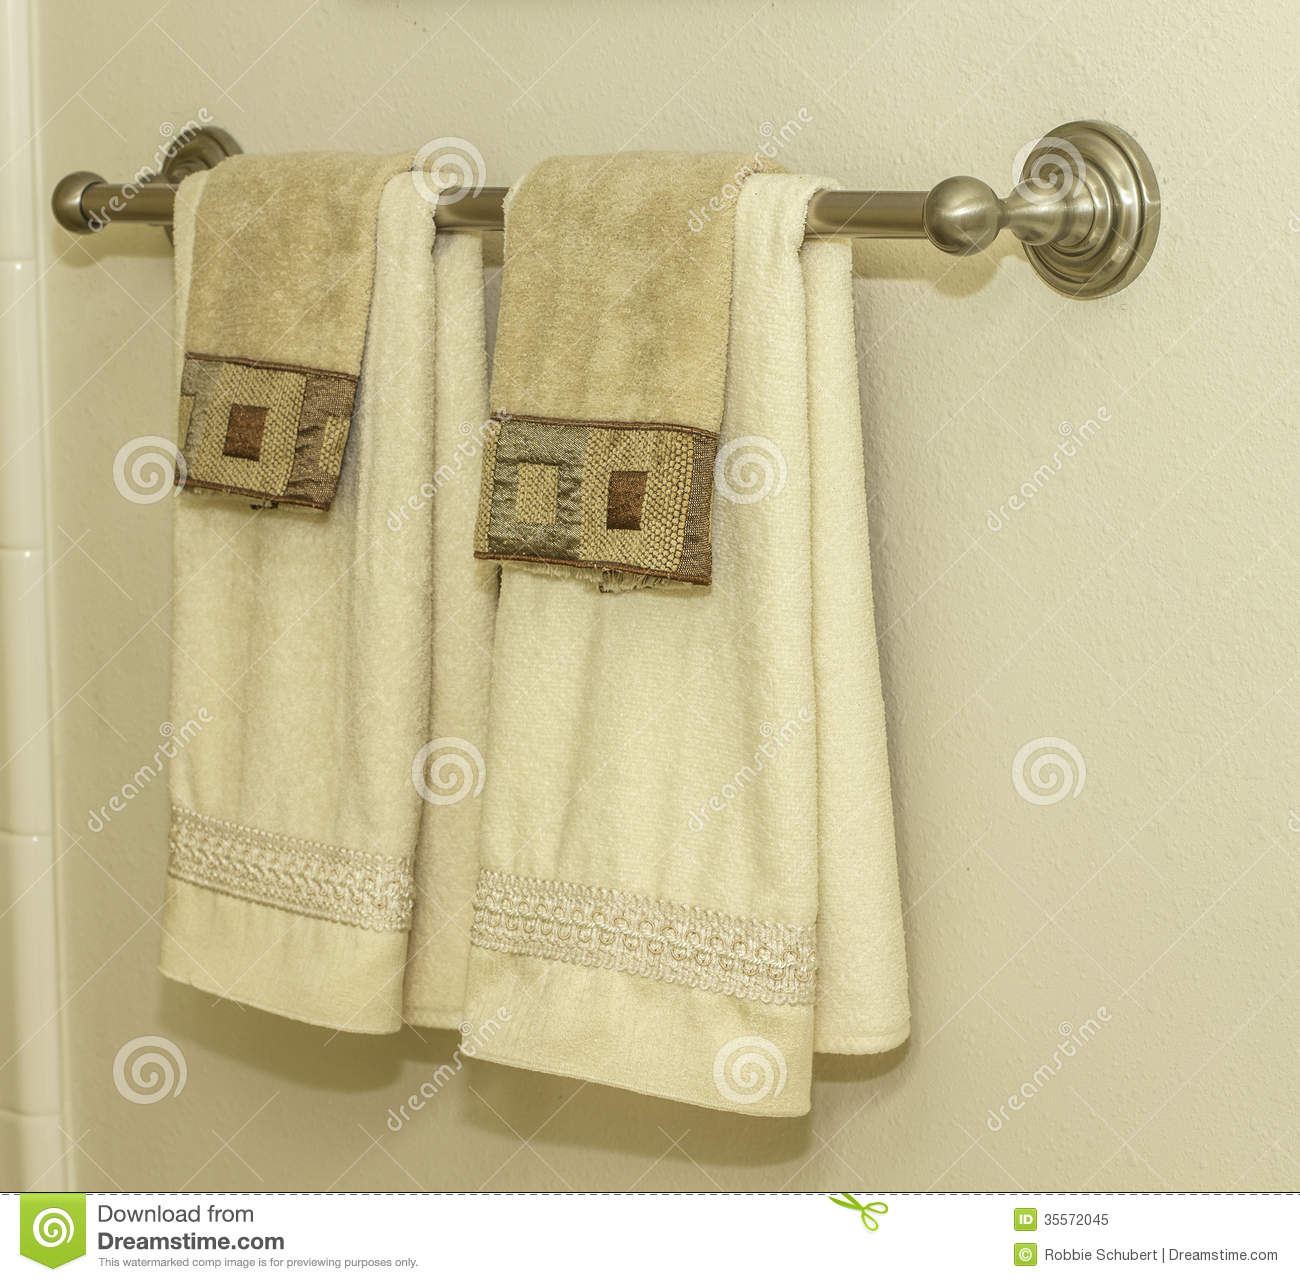 Genial A Bathroom Towel Rack Hanging On A Wall.